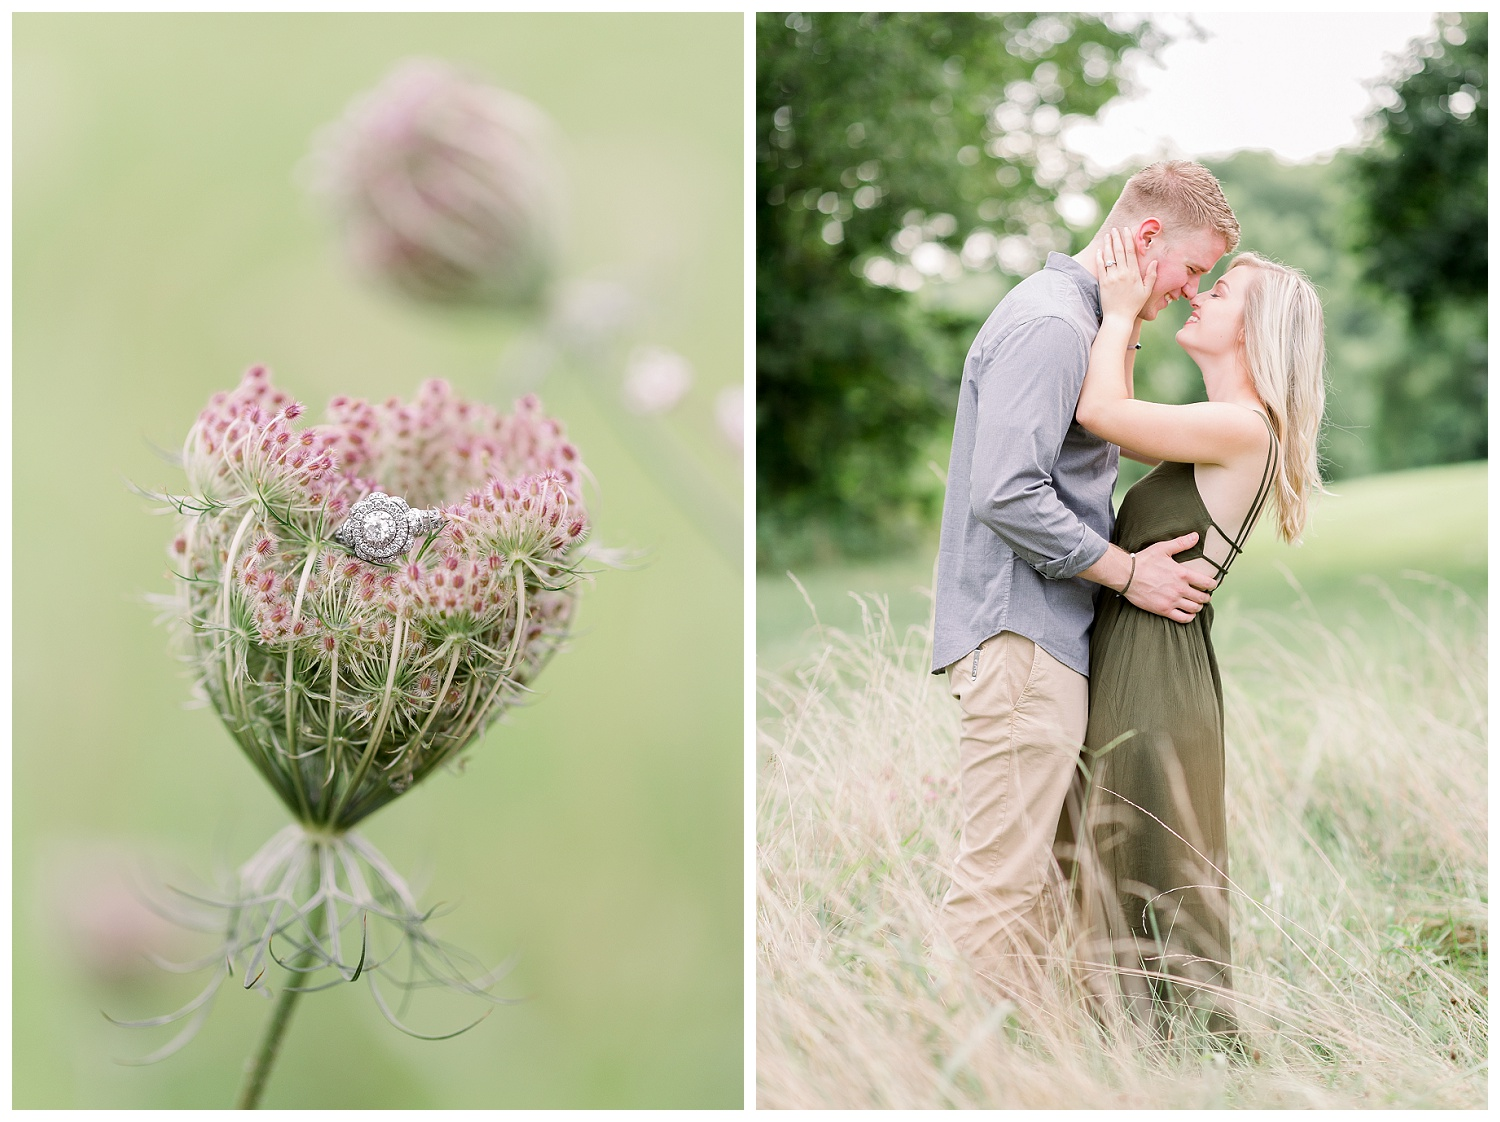 Light and airy wedding and engagement photographer